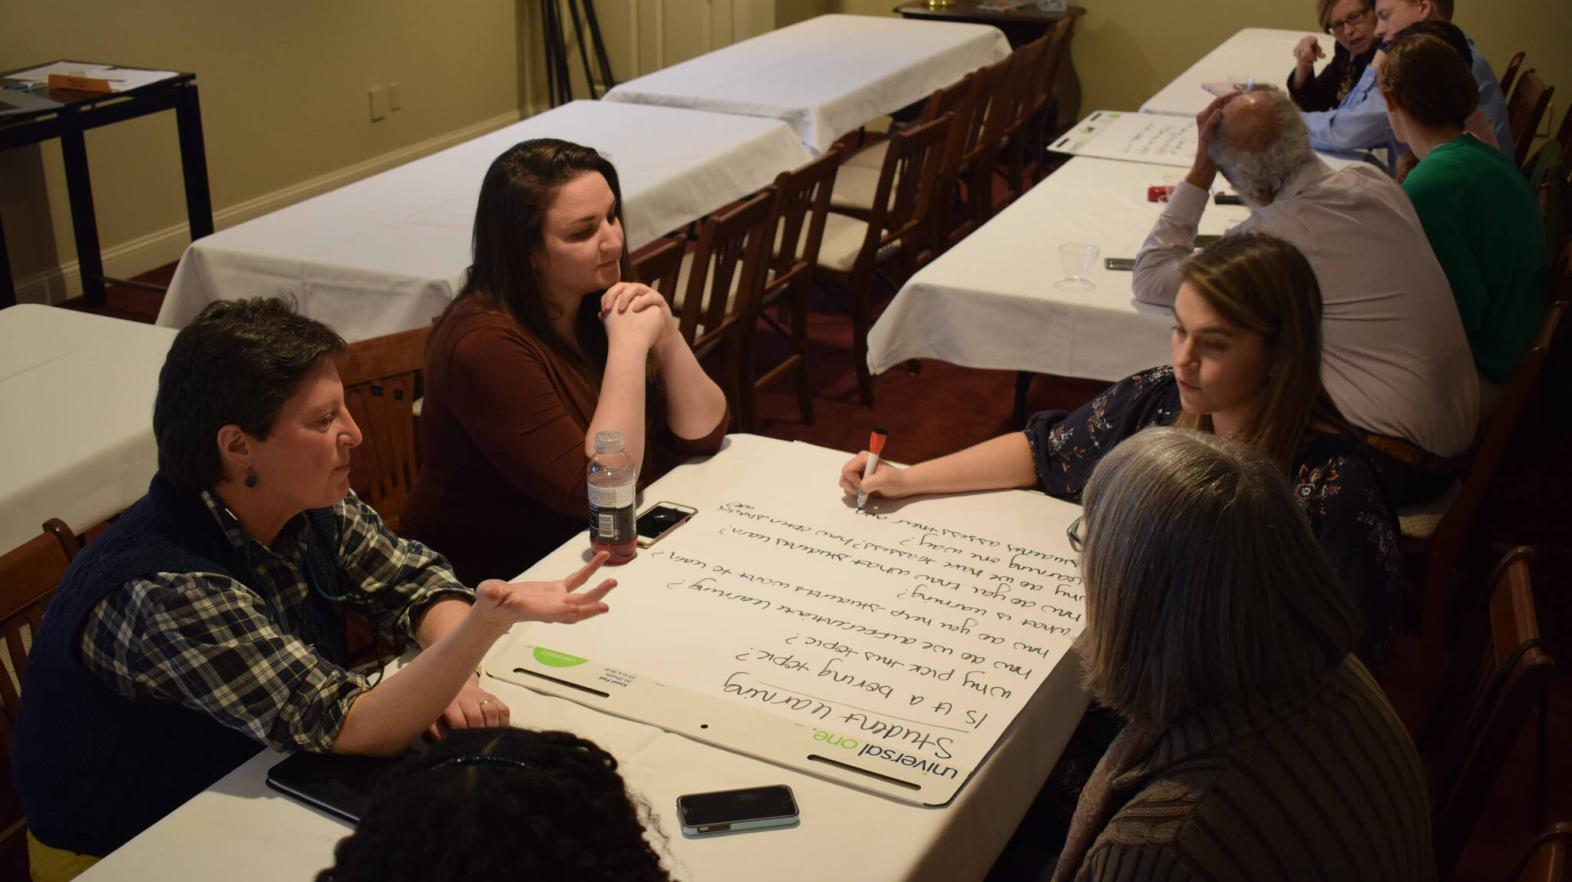 Four women sit around a large poster brainstorming ideas